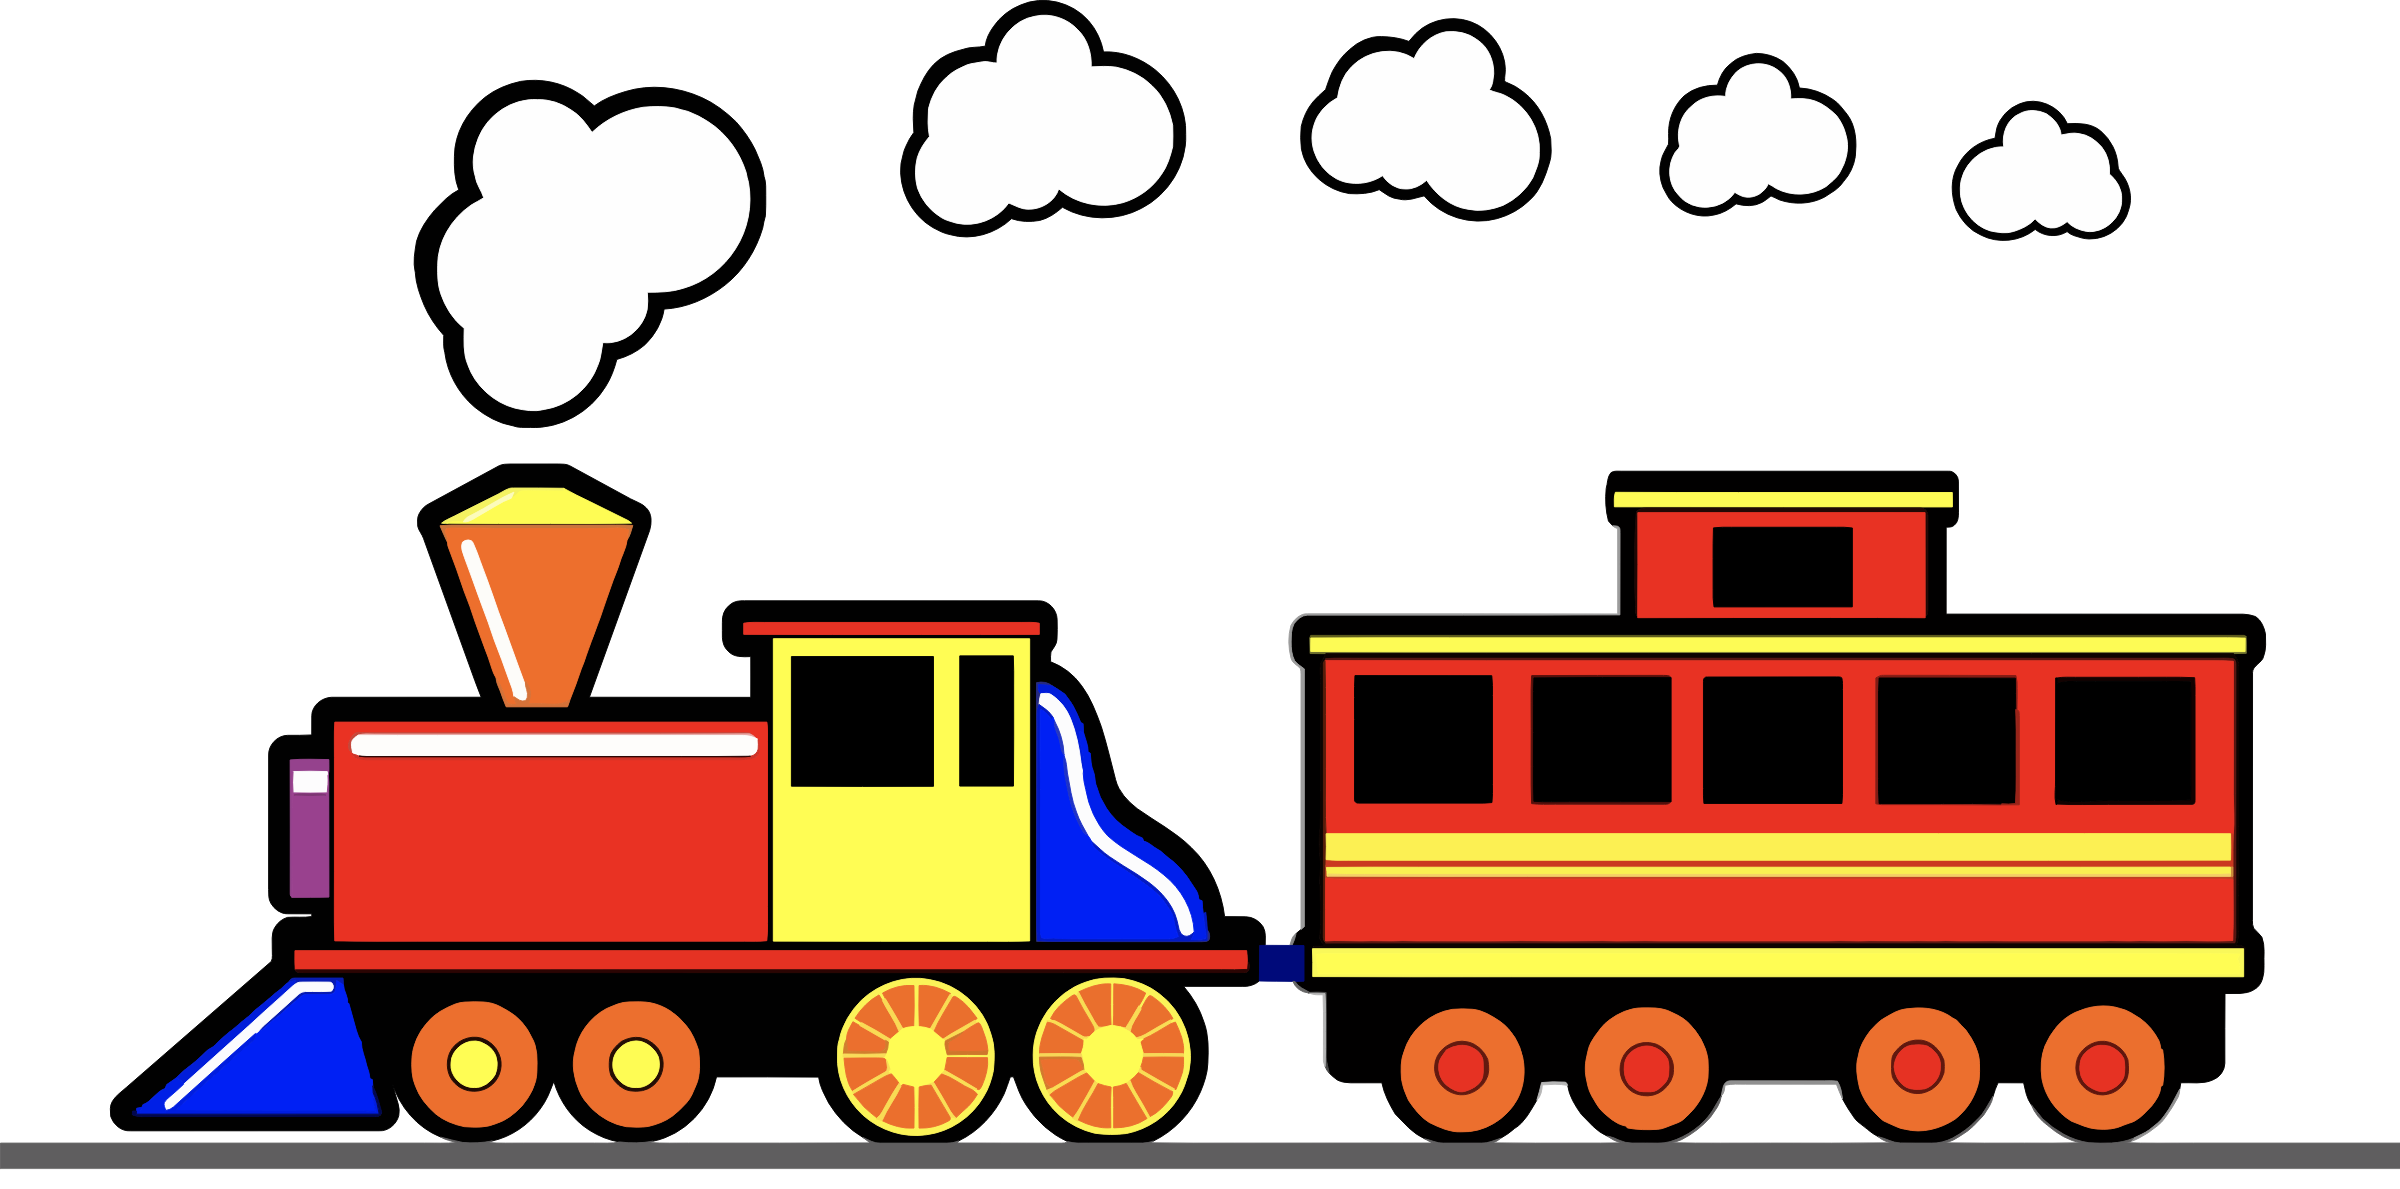 Toy icons png free. Clouds clipart train